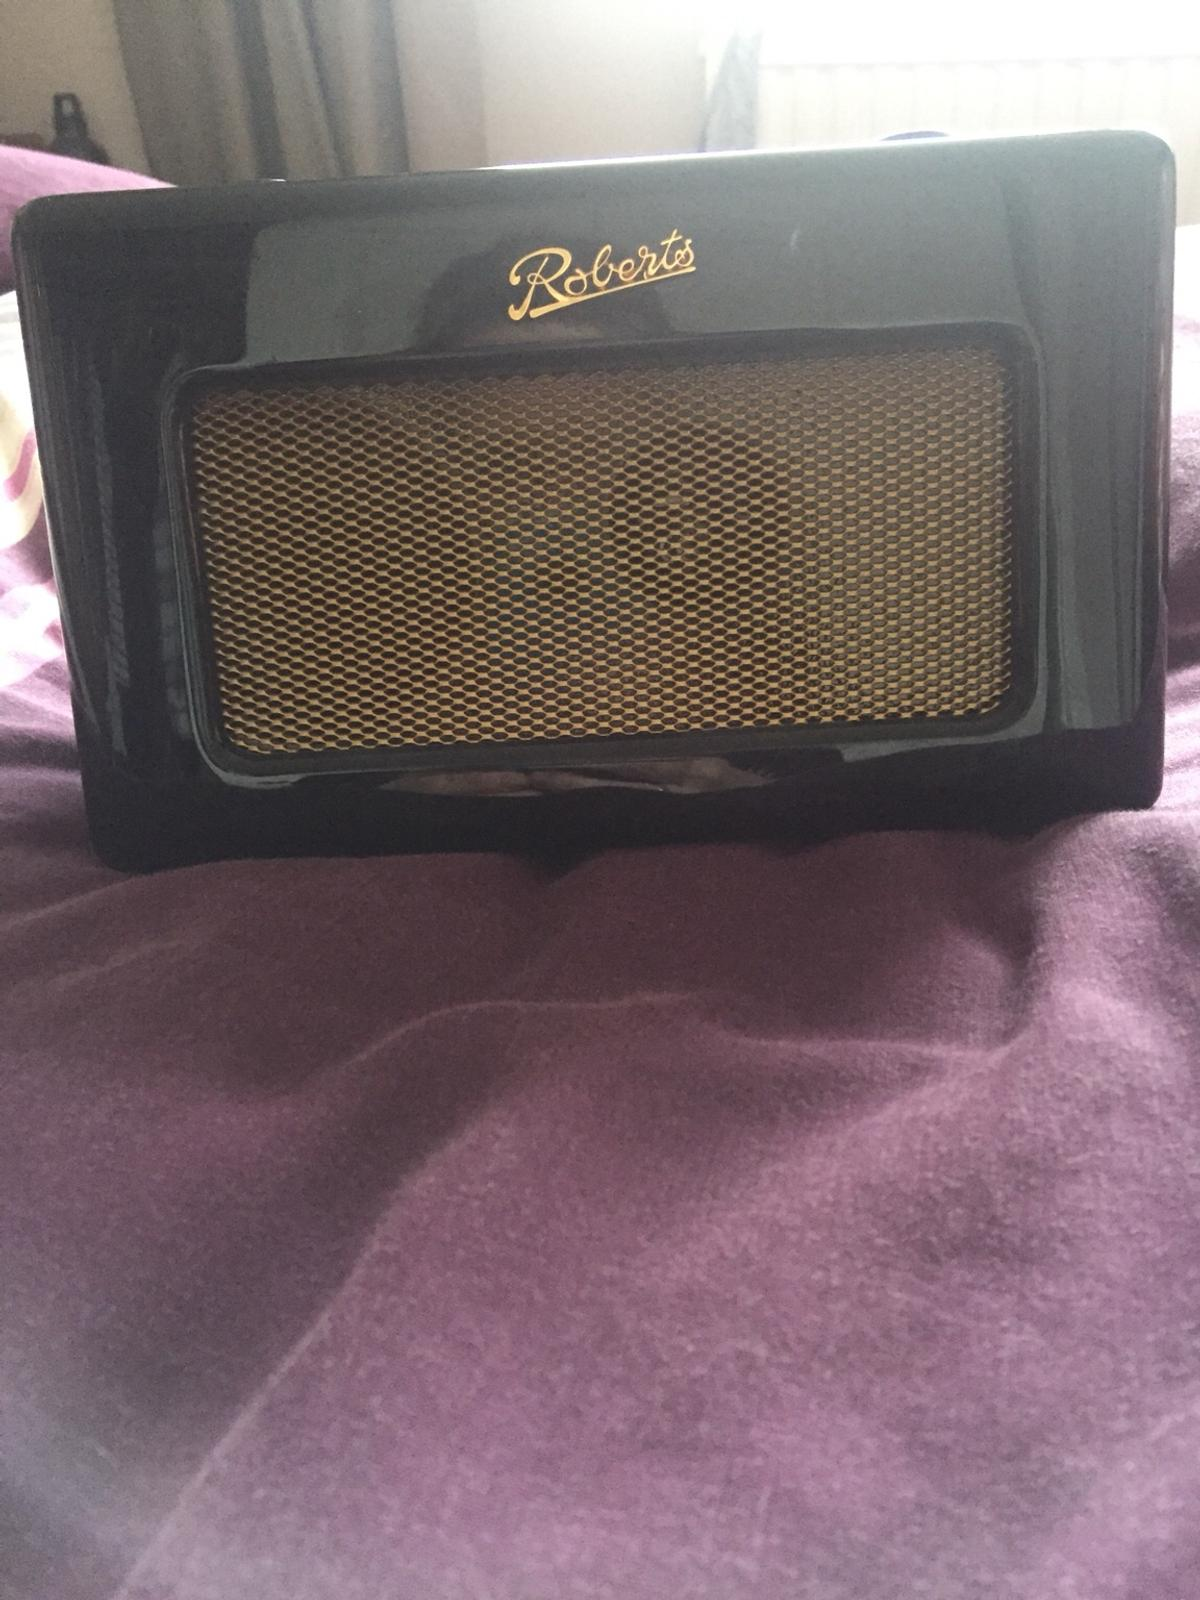 Roberts dab radio excellent condition battery or main operated